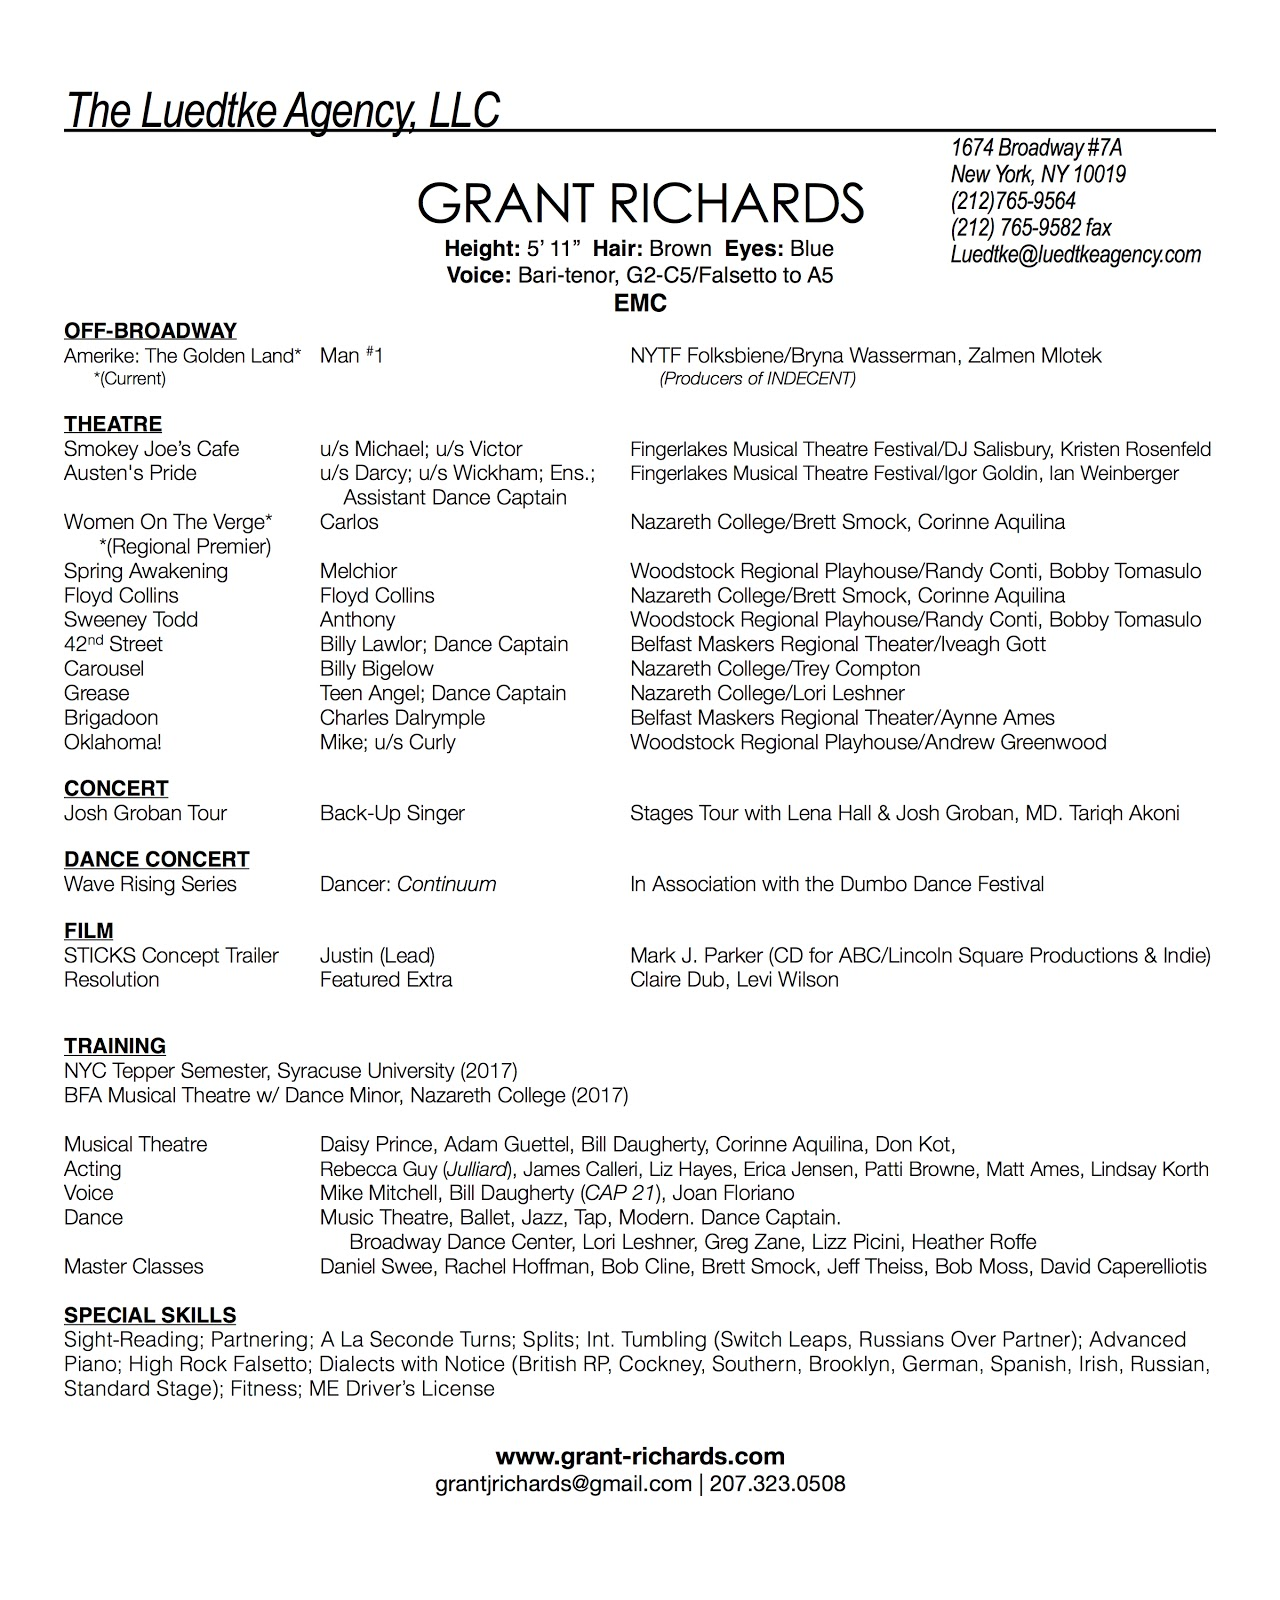 Successful Resume Format Resume  Grant Richards  Actor Singer Dancer Example Resume Objective Excel with Internship Resume Examples Click Here To Download Resume As Pdf Objective For Social Work Resume